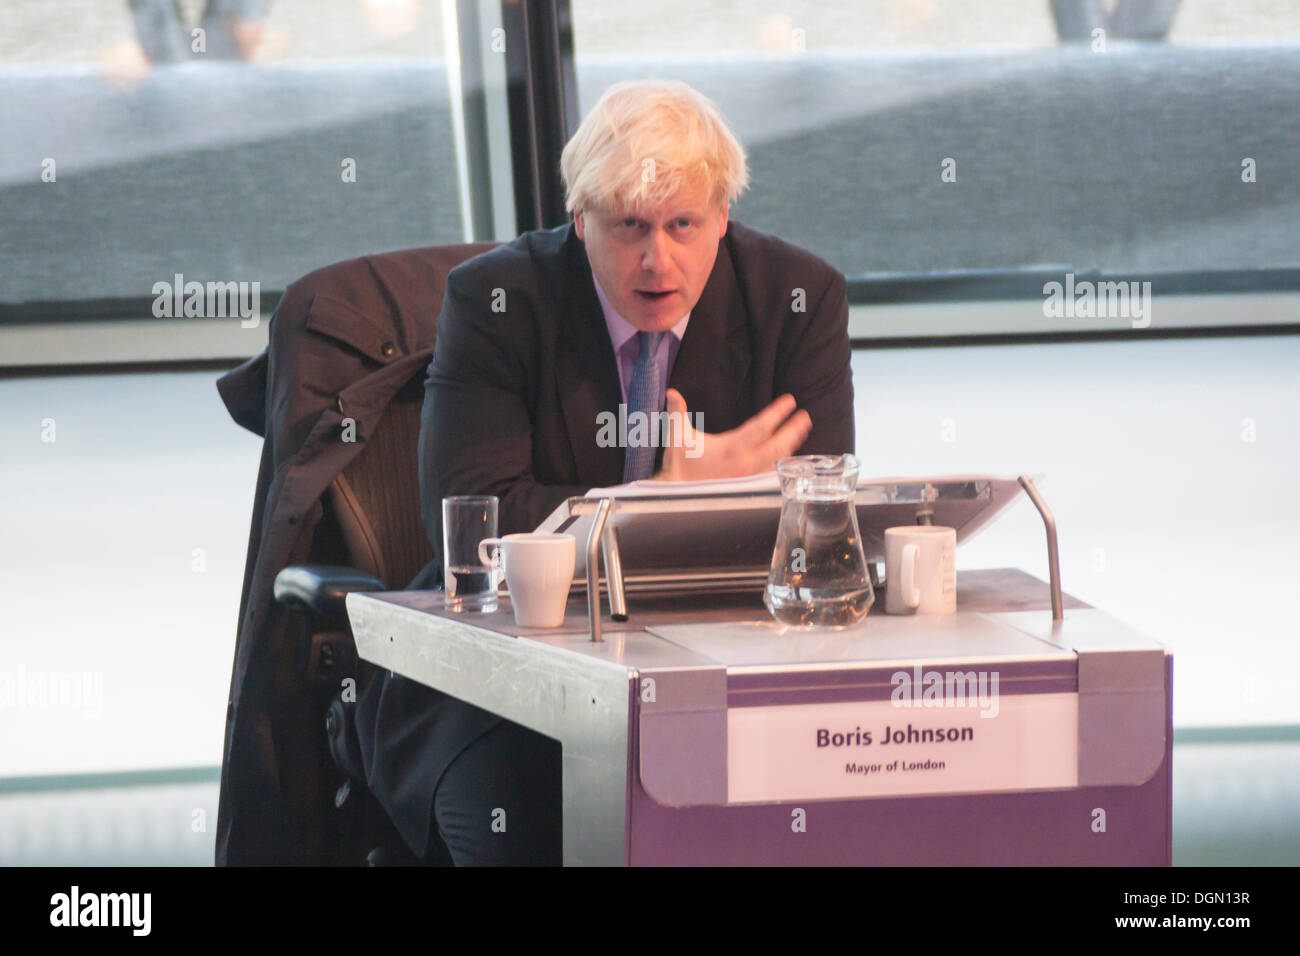 London. 23 October 2013. Mayor of London Boris Johnson faces questions from members of the London Assembly at City Hall. - Stock Image